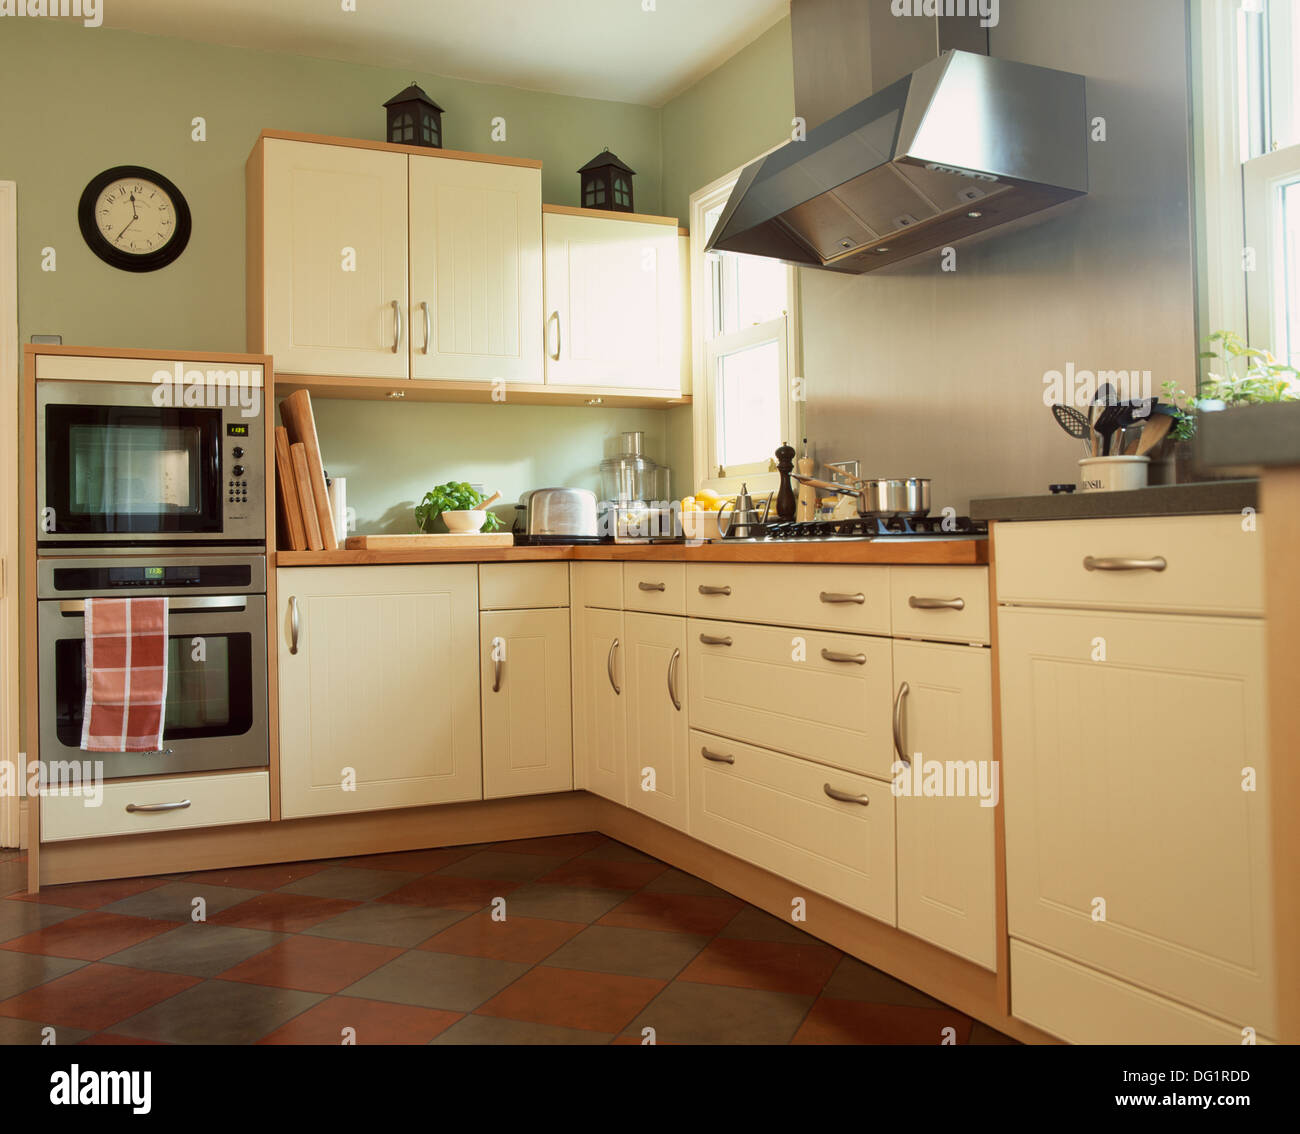 Pale Green Kitchen Units: Double Oven Stock Photos & Double Oven Stock Images